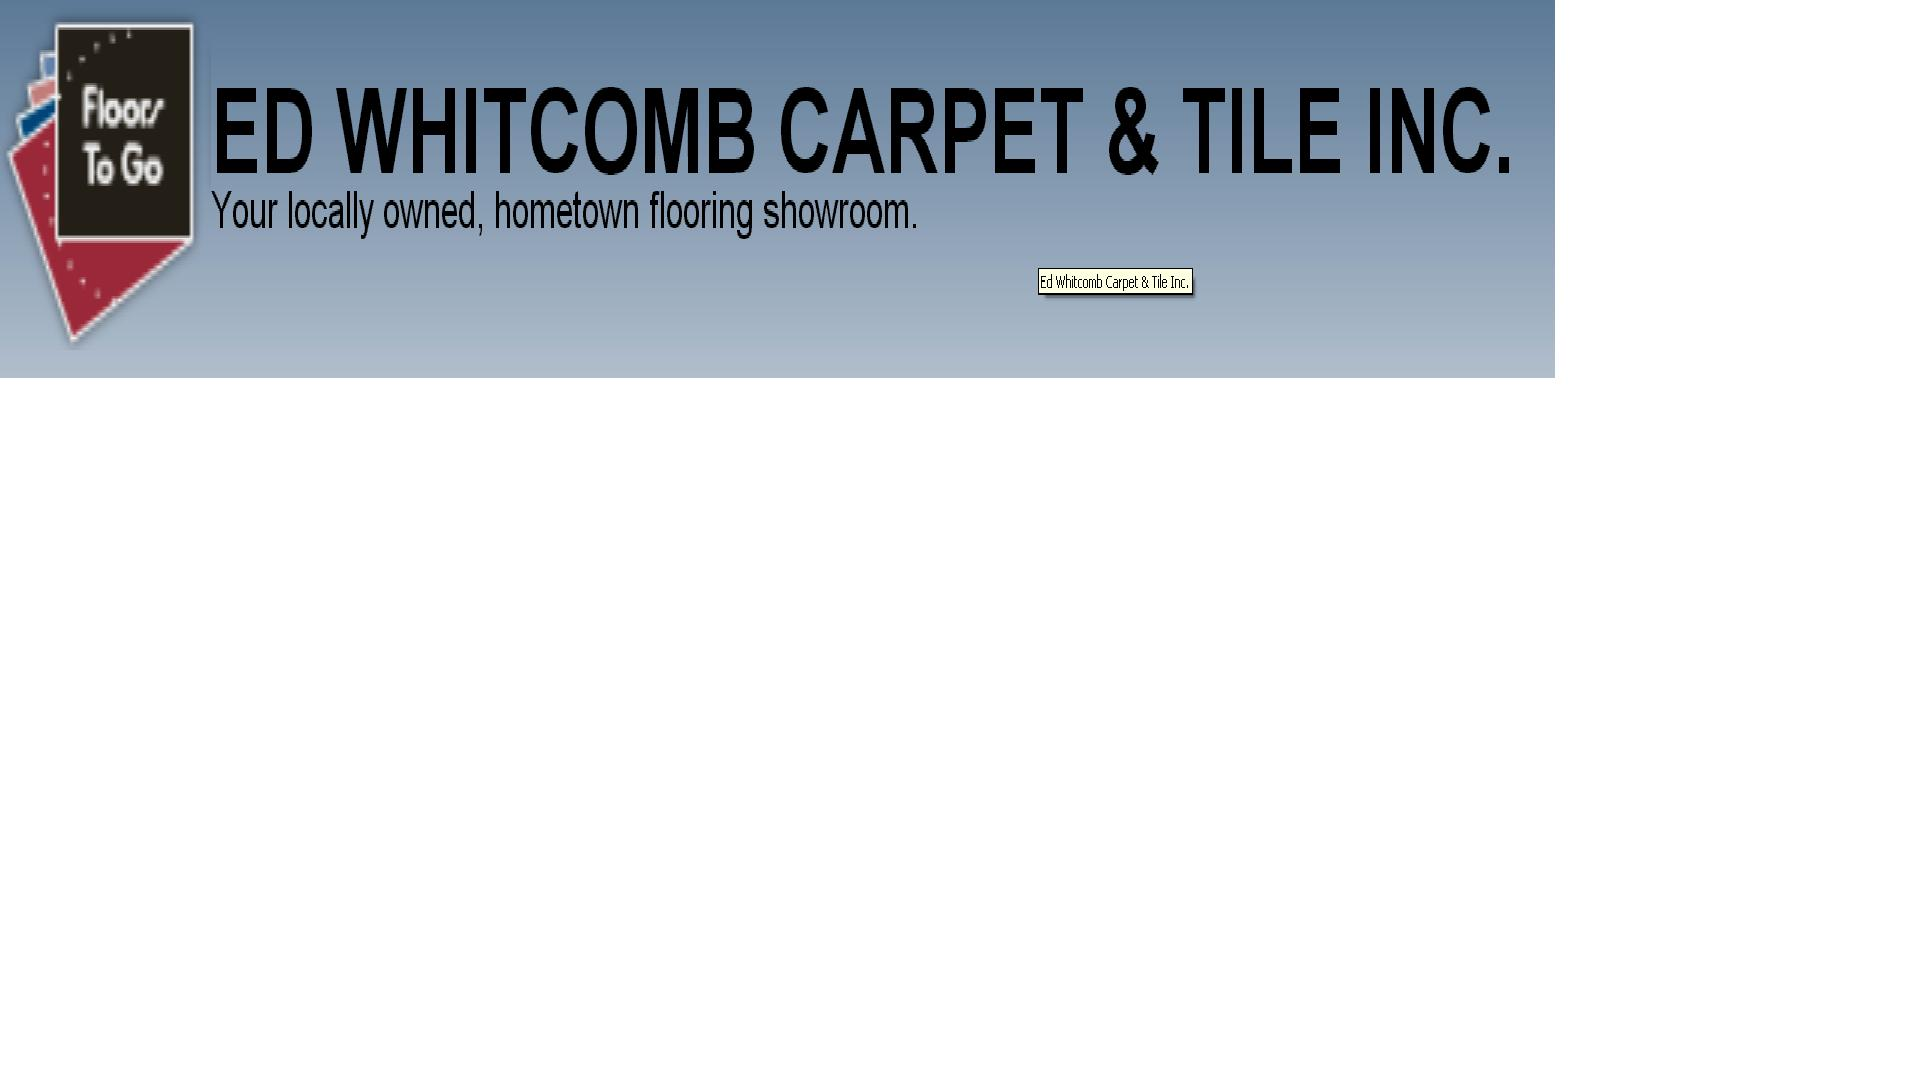 Ed Whitcomb Carpet & Tile